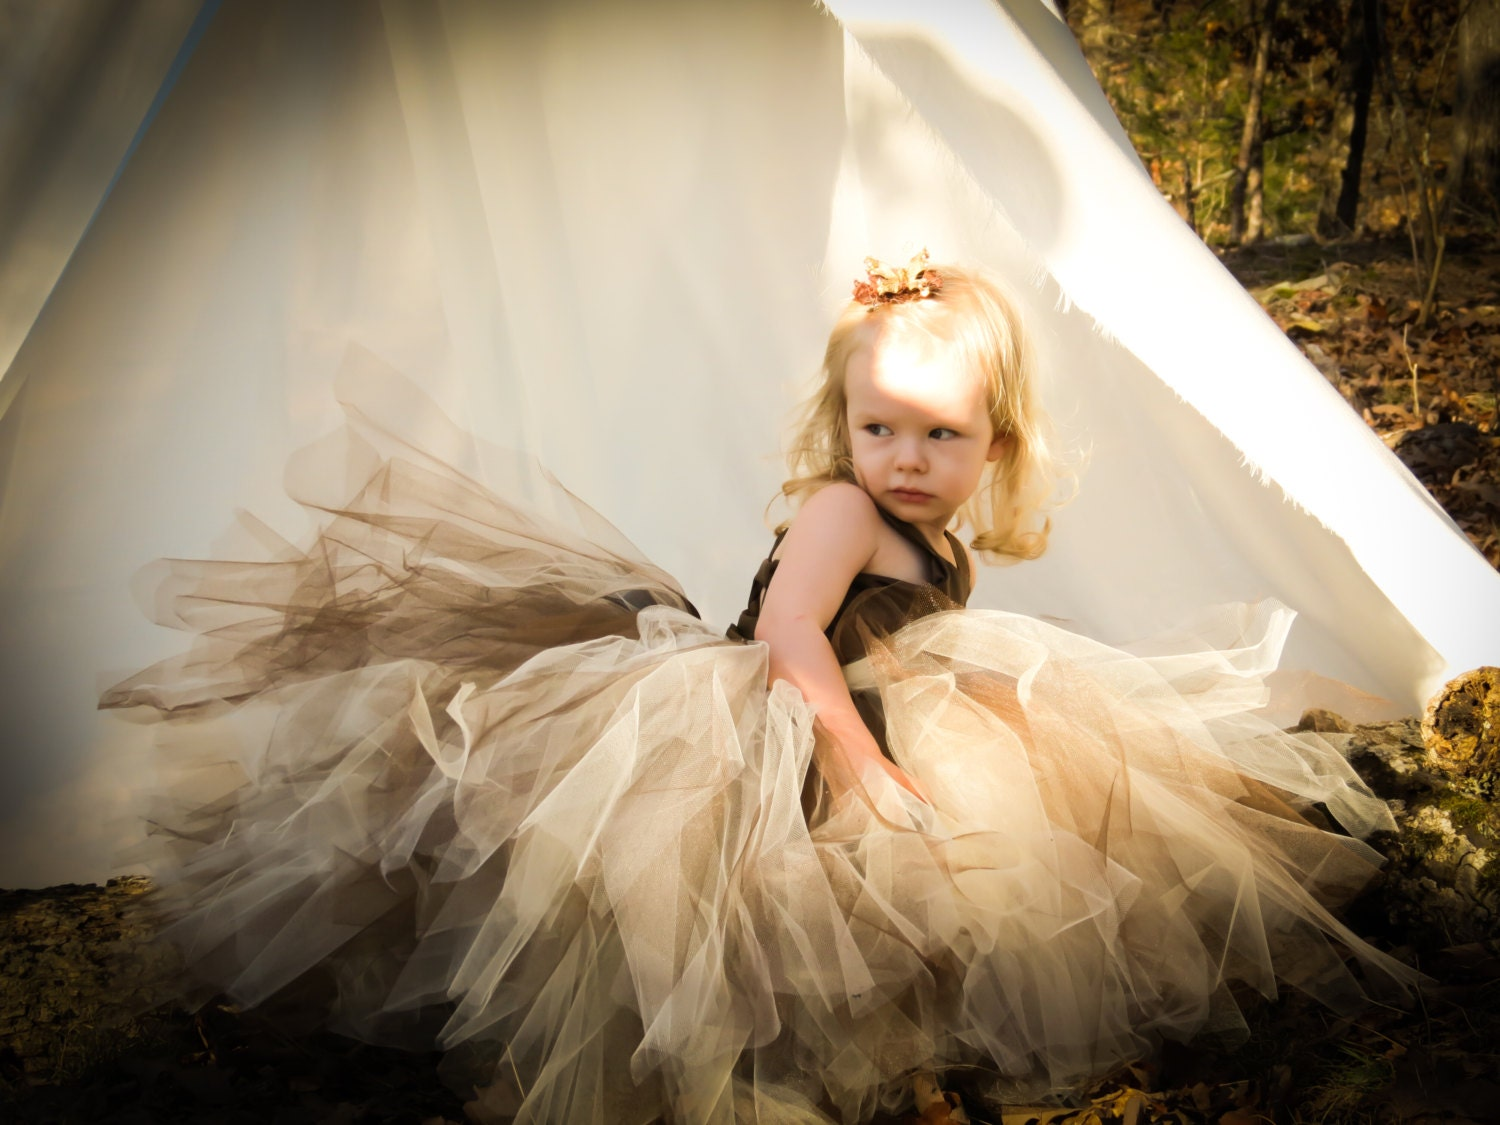 Pixie Tutu Dressocolate Brown Satin Bodiceown And